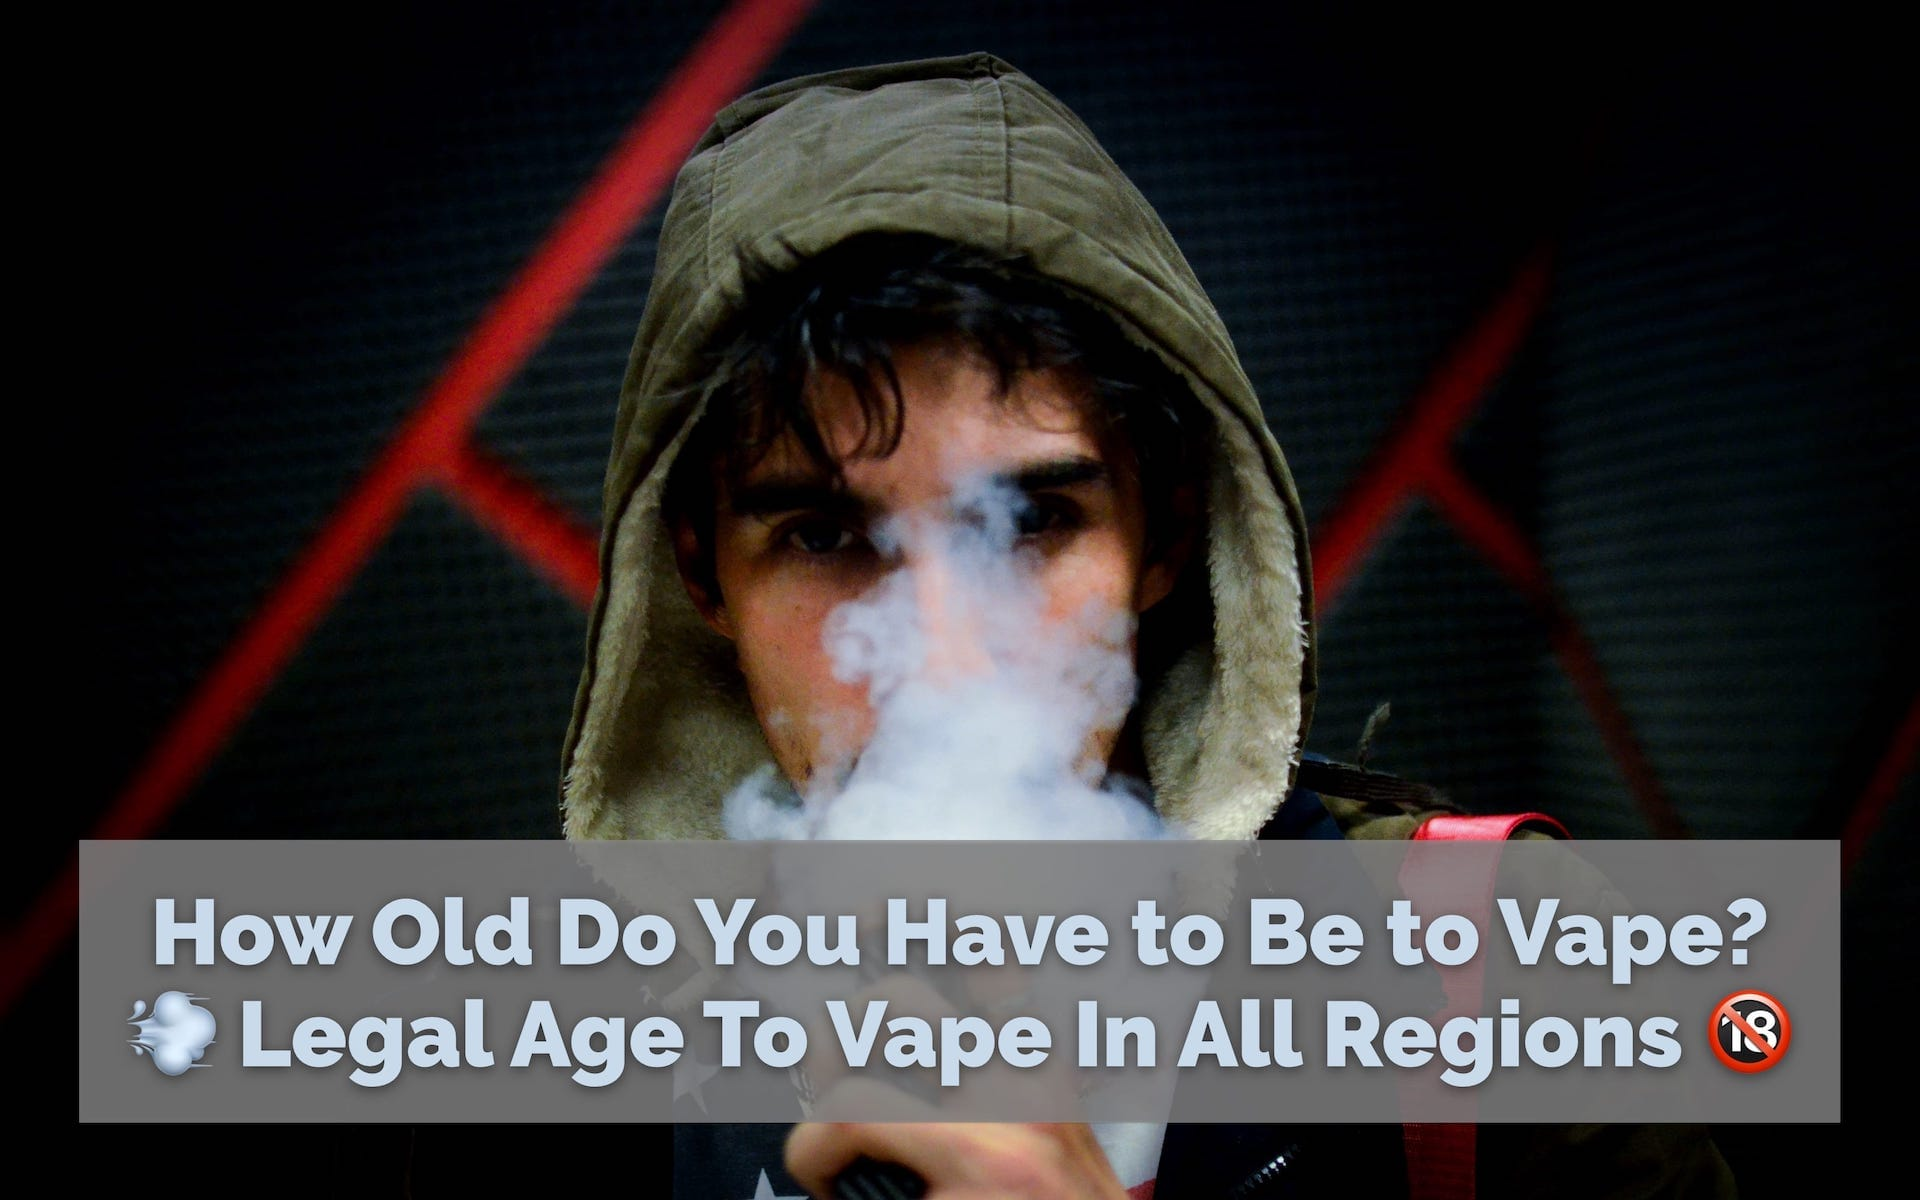 legal age to vape